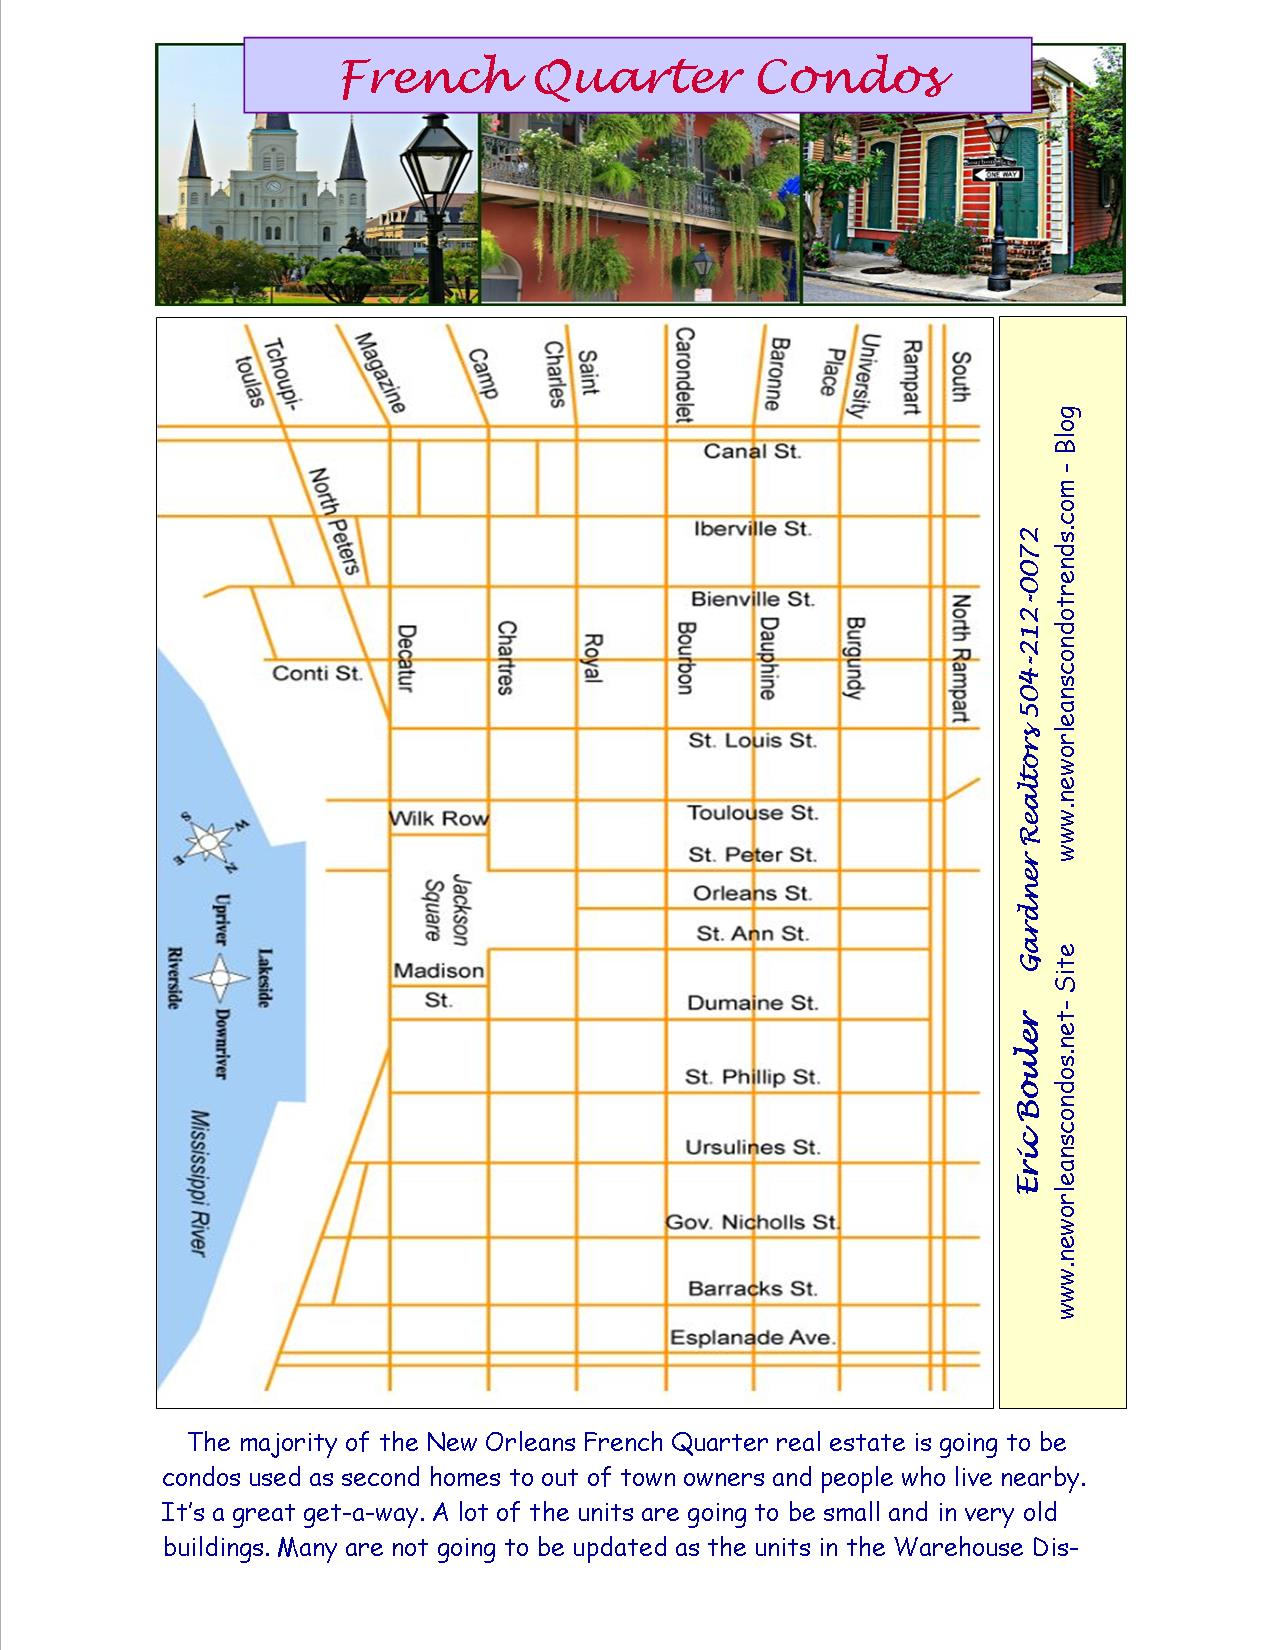 French Quarter Condos the Maps